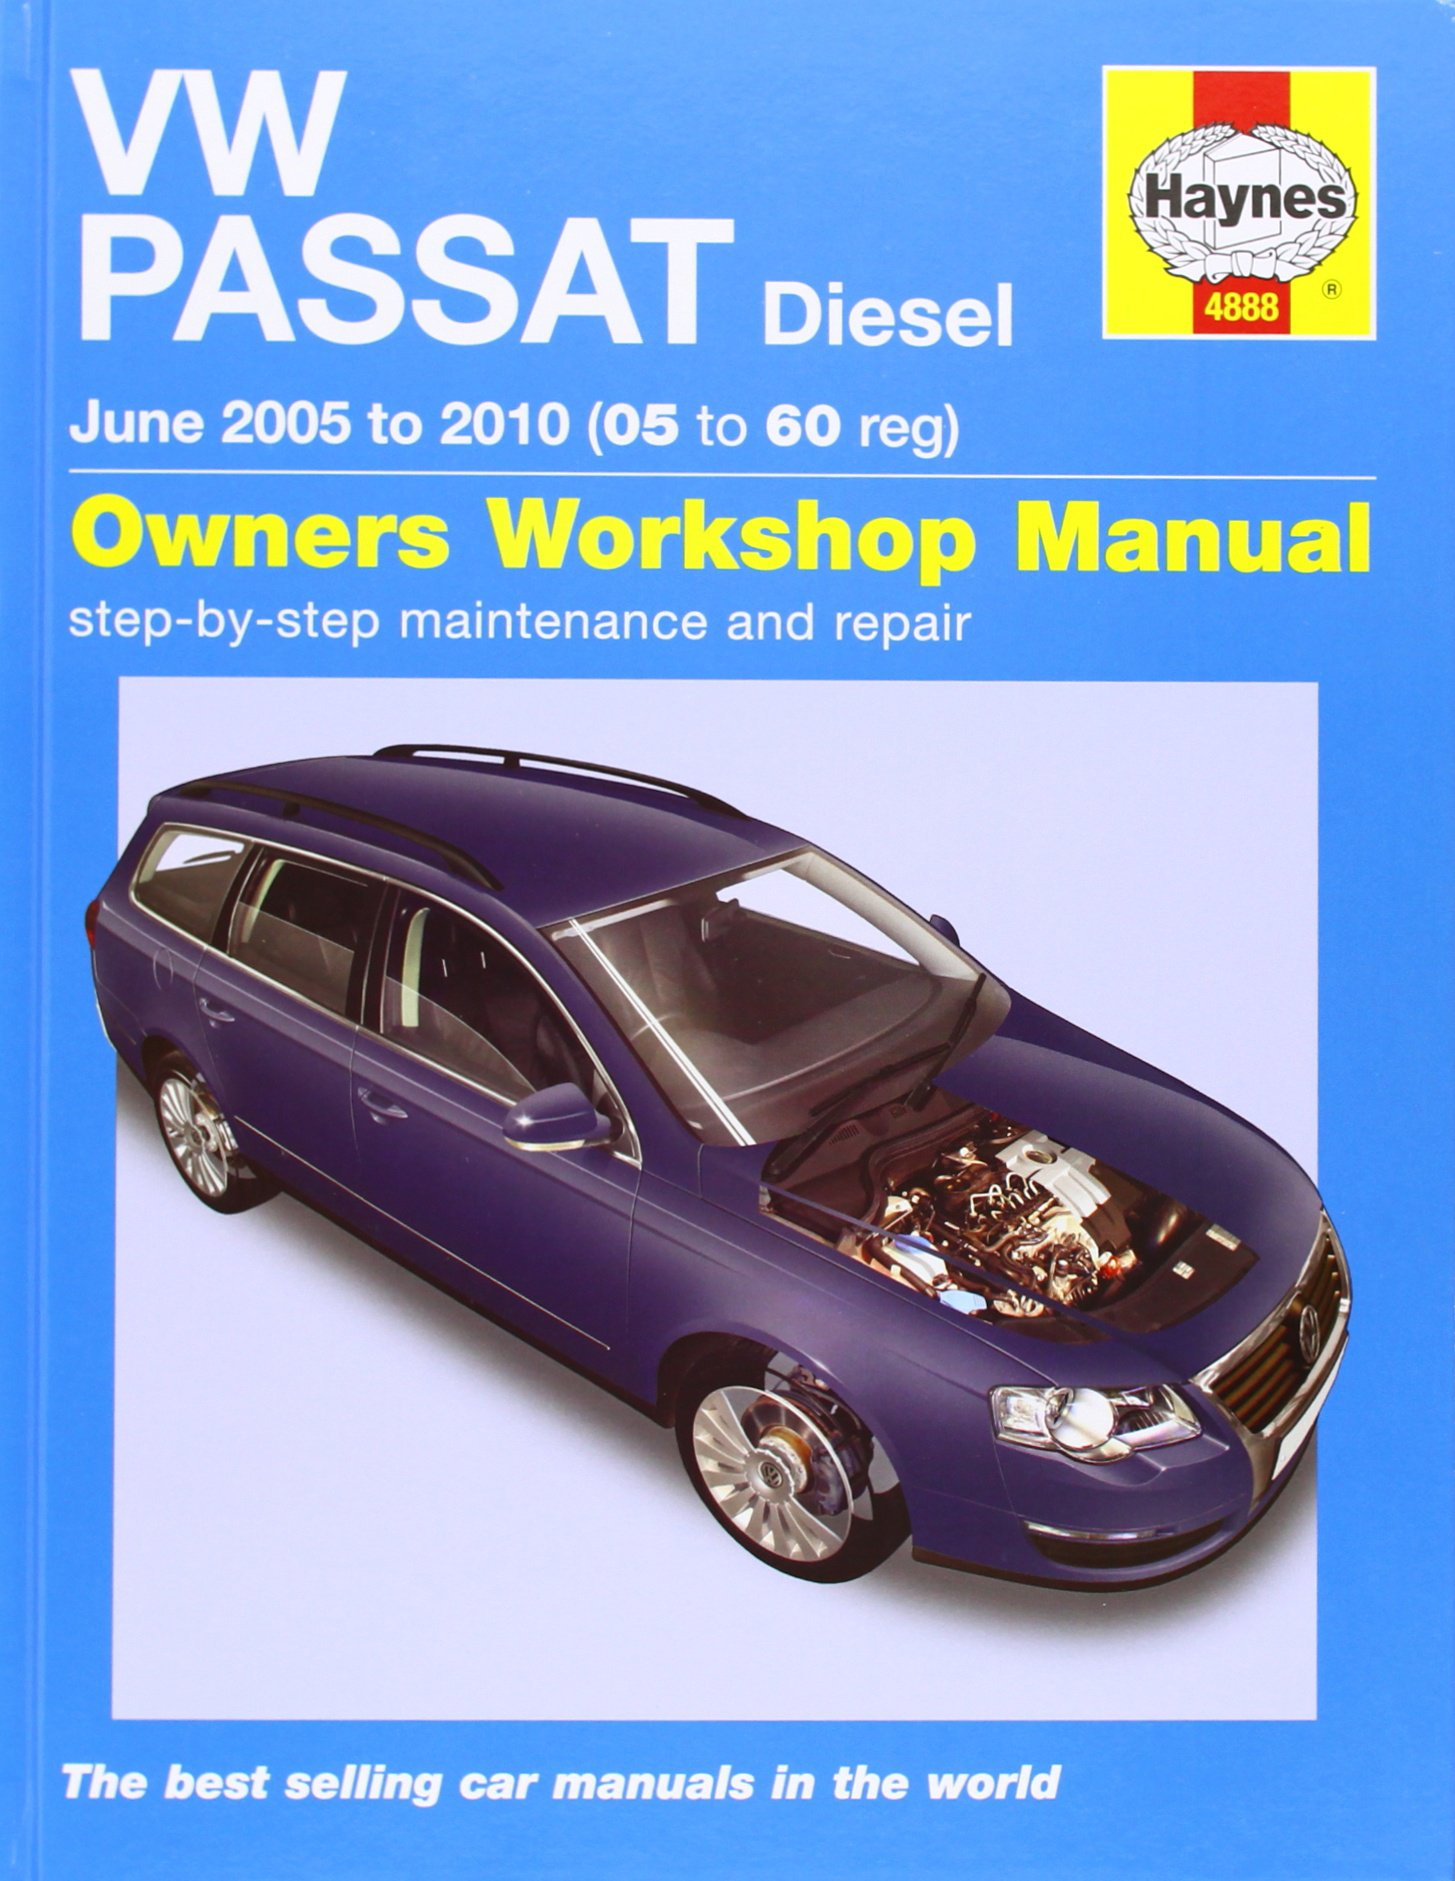 Vw Passat Diesel Service And Repair Manual 2005 To 2010 2013 Wiring Diagram Manuals Martynn Randall 9781844258888 Books